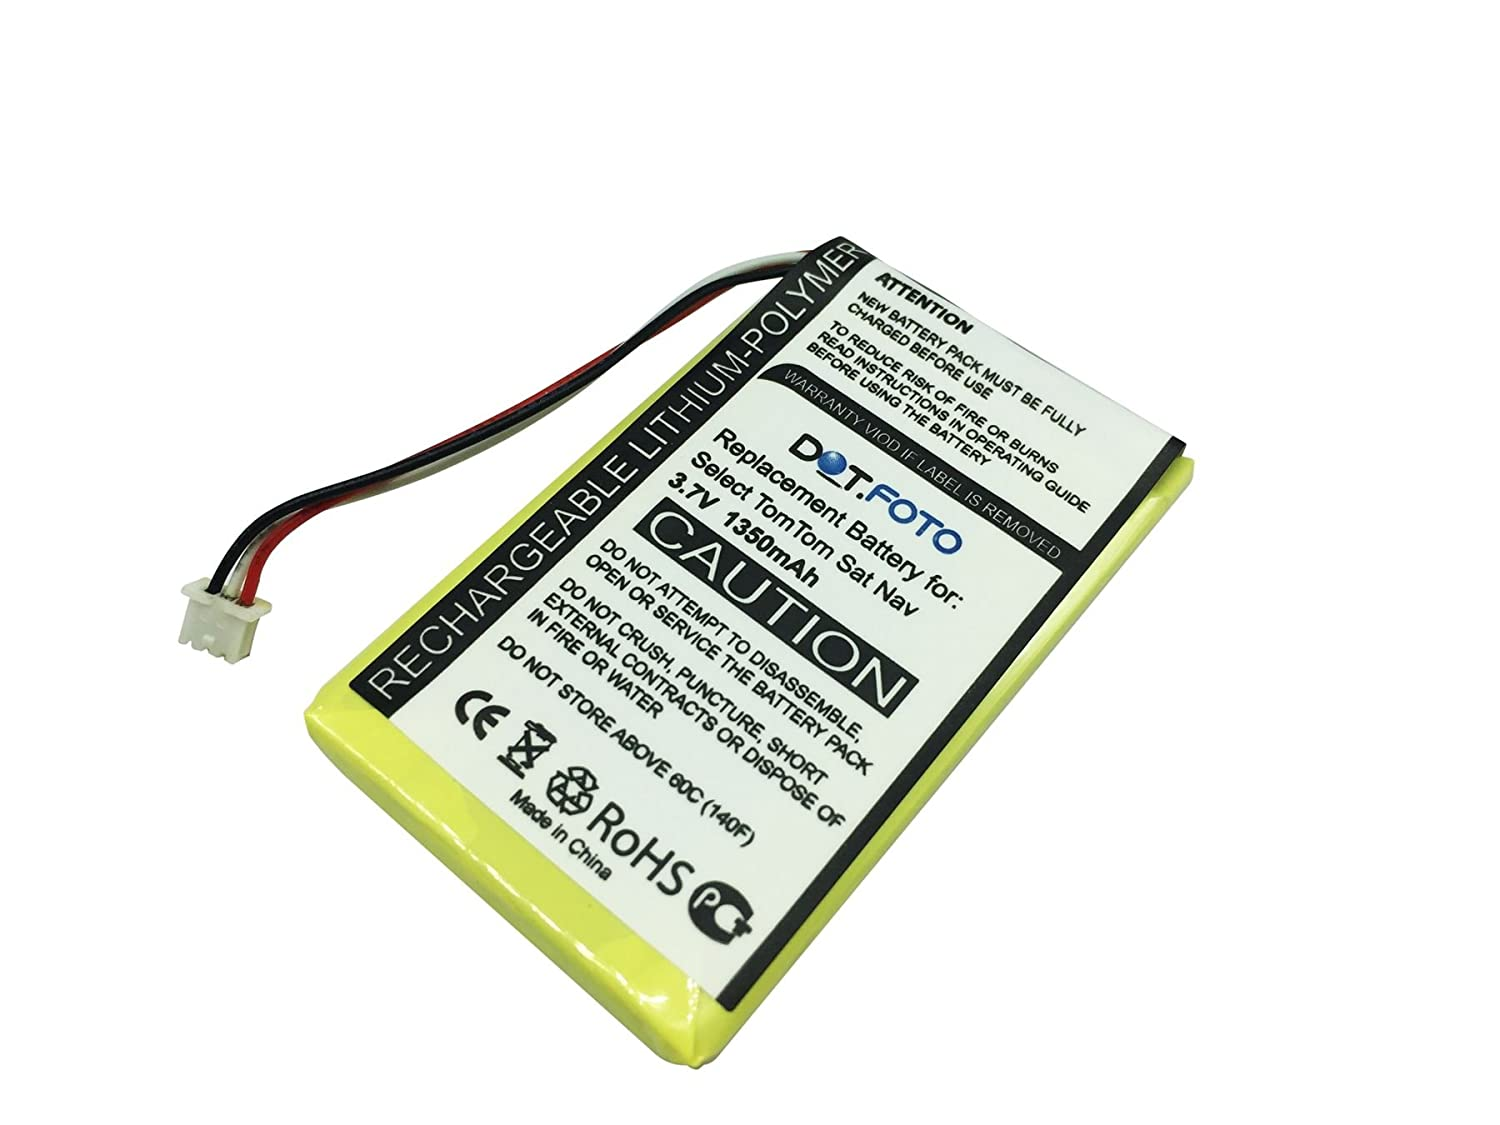 TomTom Go 730 Battery with Tools Kit 1300mAh, 3.7V, Lithium -Ion